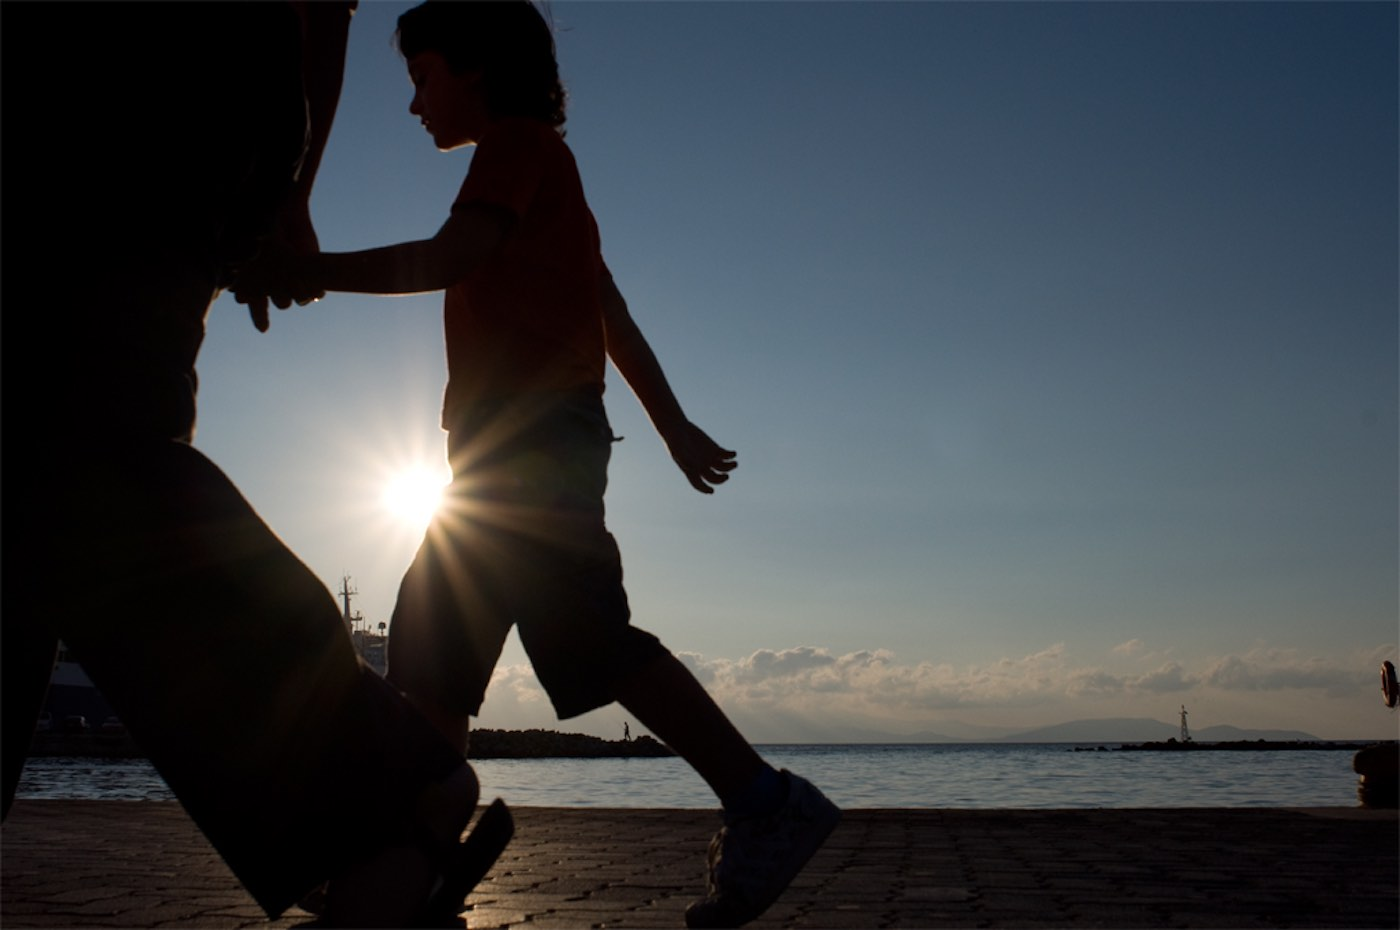 child-boy-walking-beach-holding-hands-family-sunset-silouette-cc-stefanos-papachristou.jpg